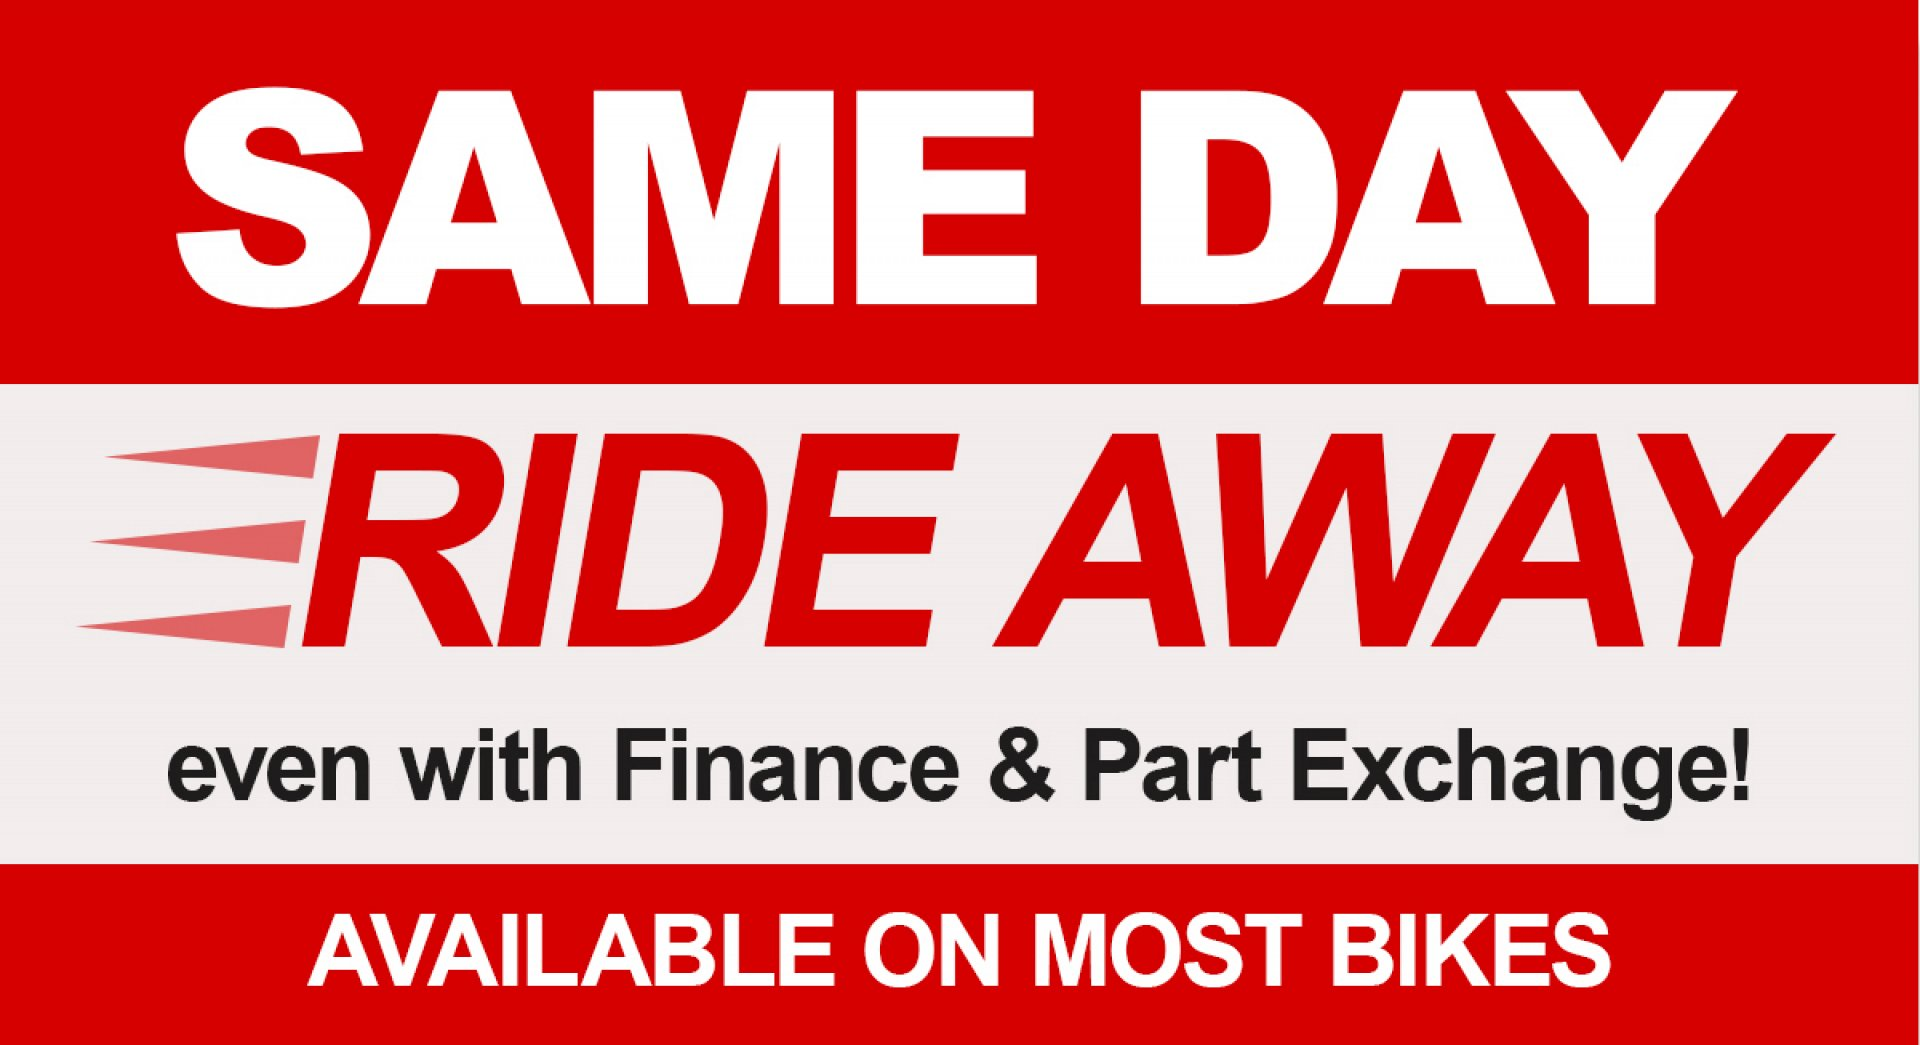 Same Day Ride Away available on most bikes